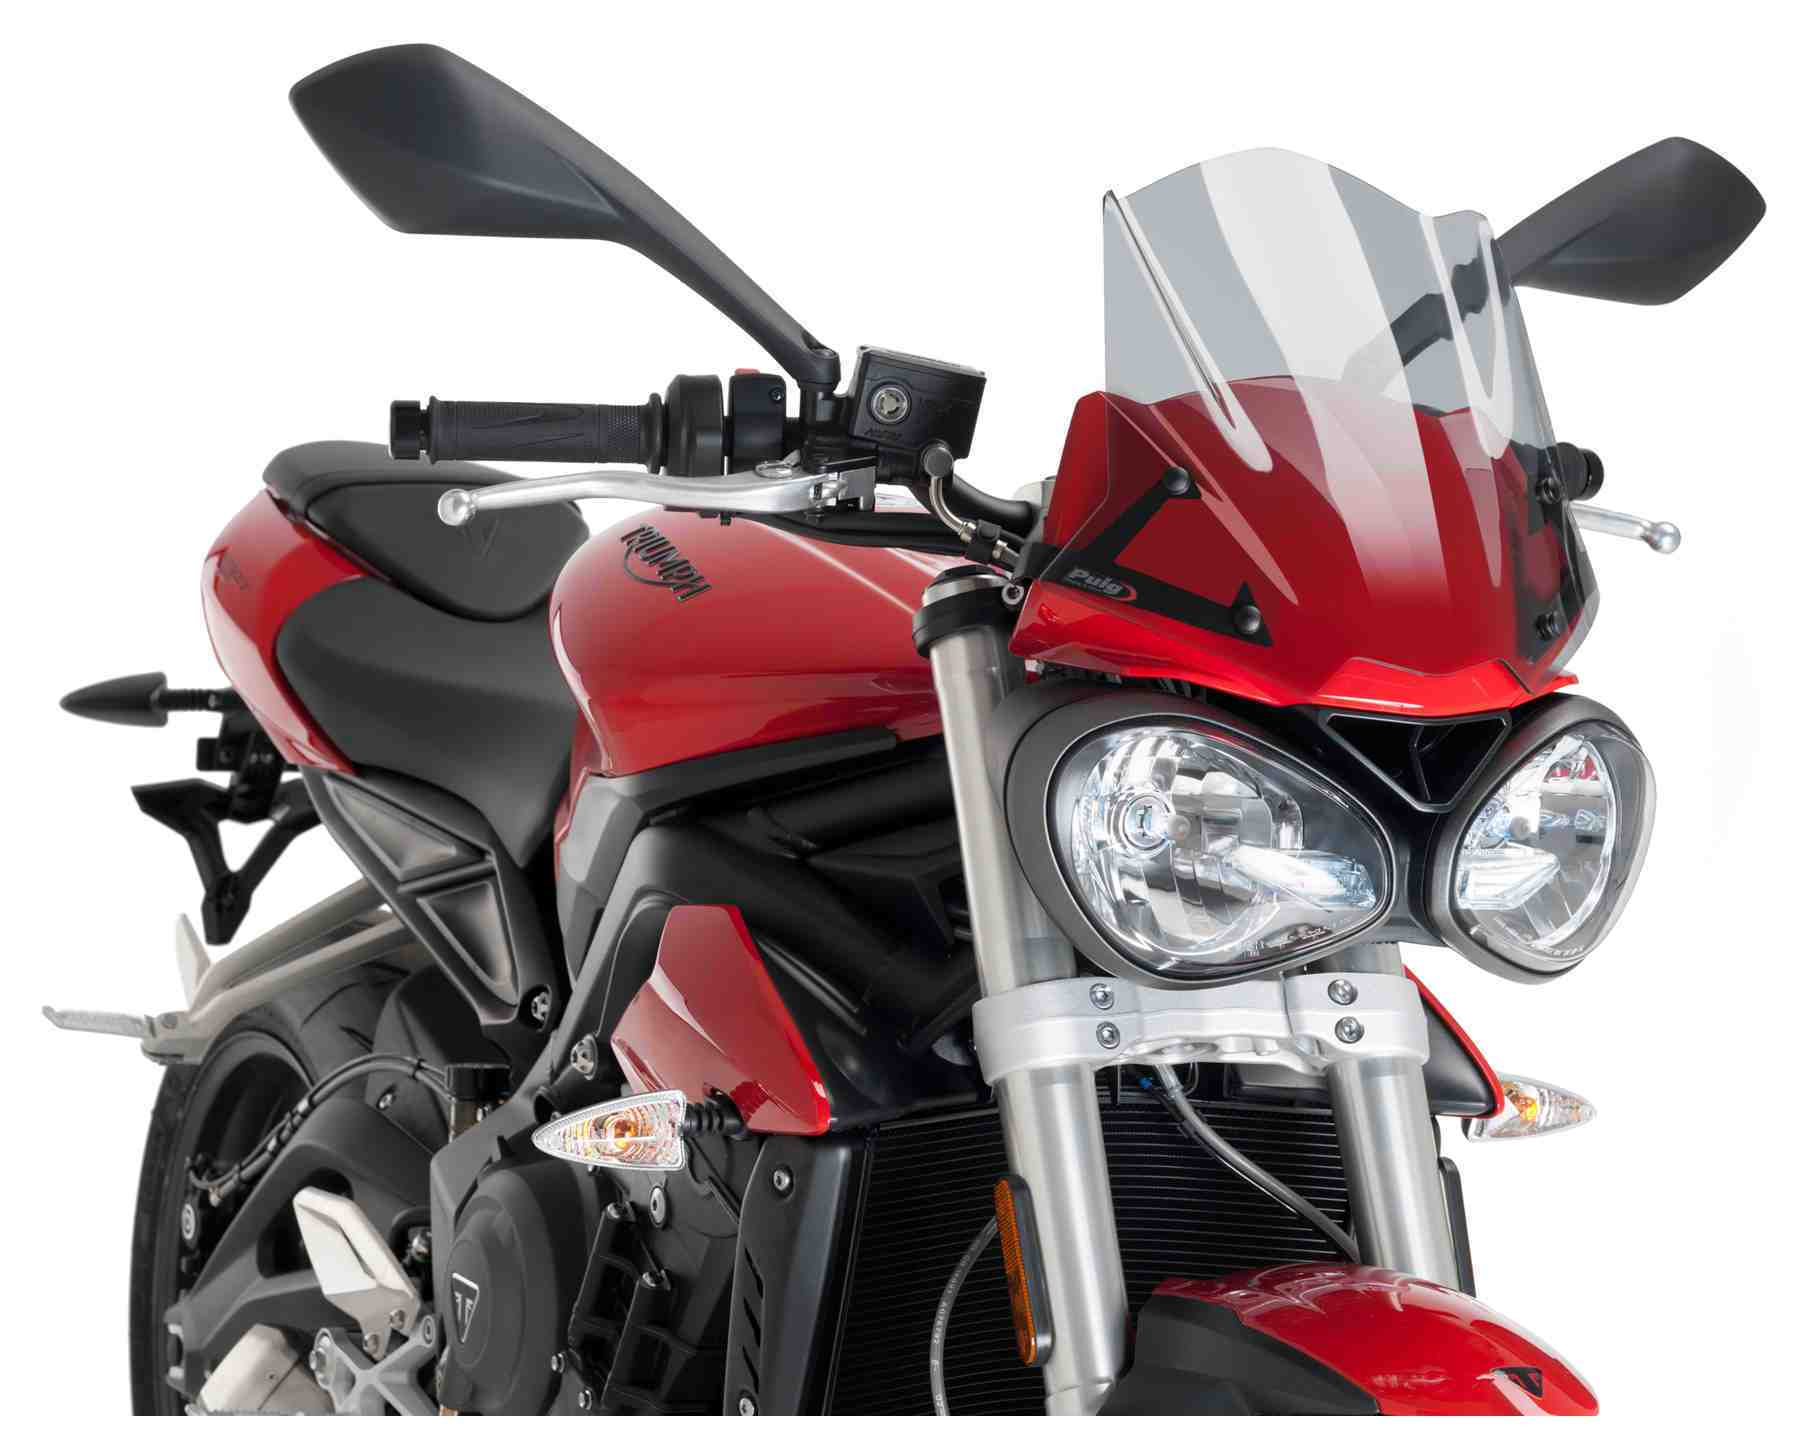 hight resolution of puig naked new generation windscreen triumph street triple 765 s 2017 2018 5 6 99 off revzilla